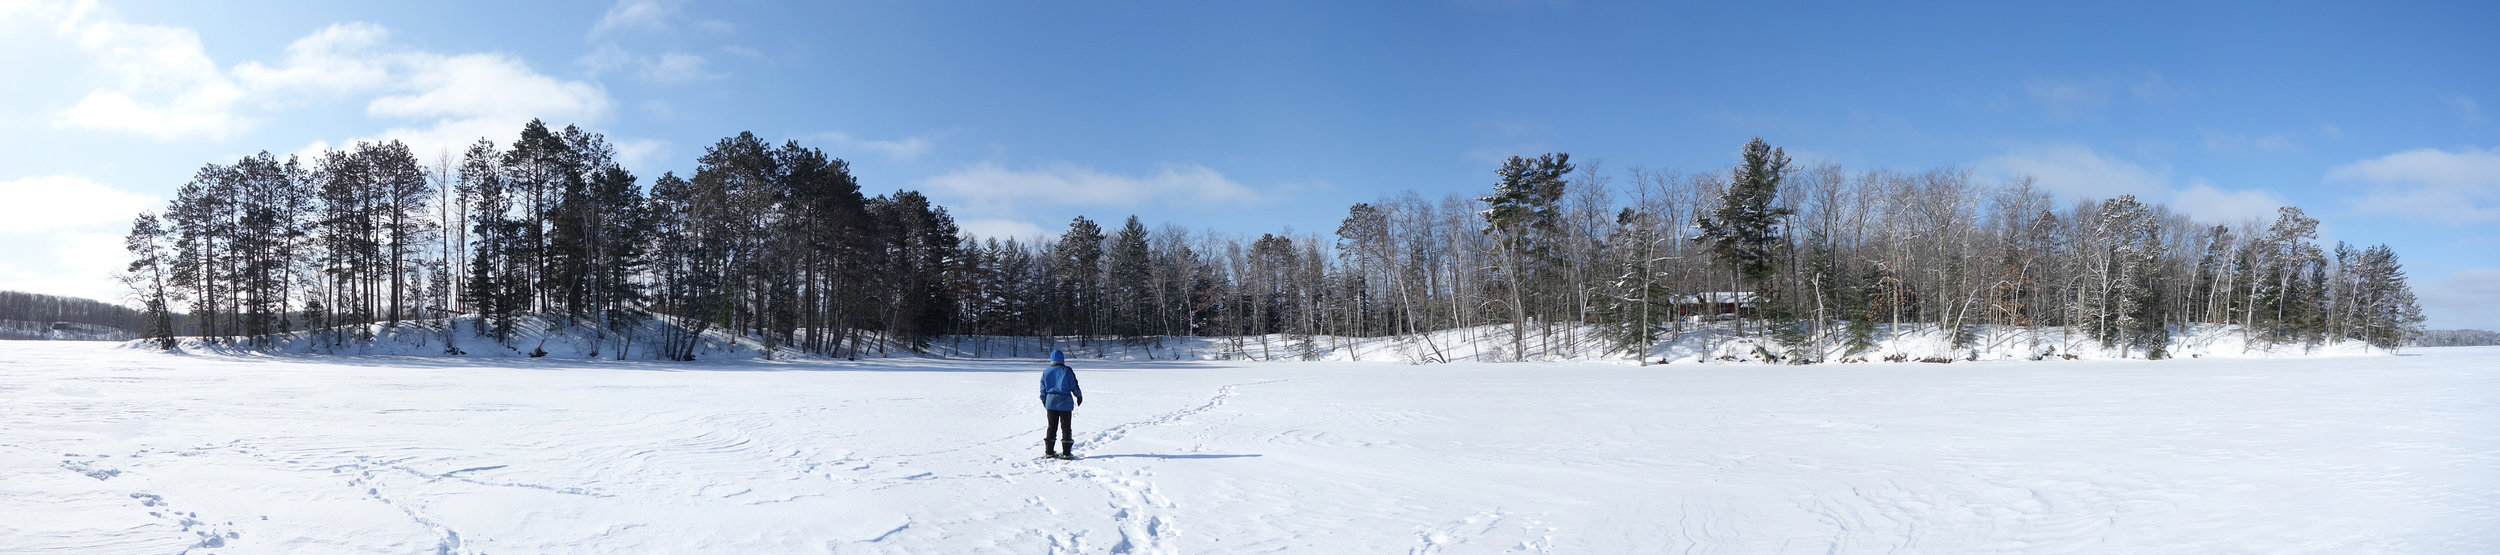 Panoramic view of the island from the north in the winter. The cabin is visible through the trees to the right of center